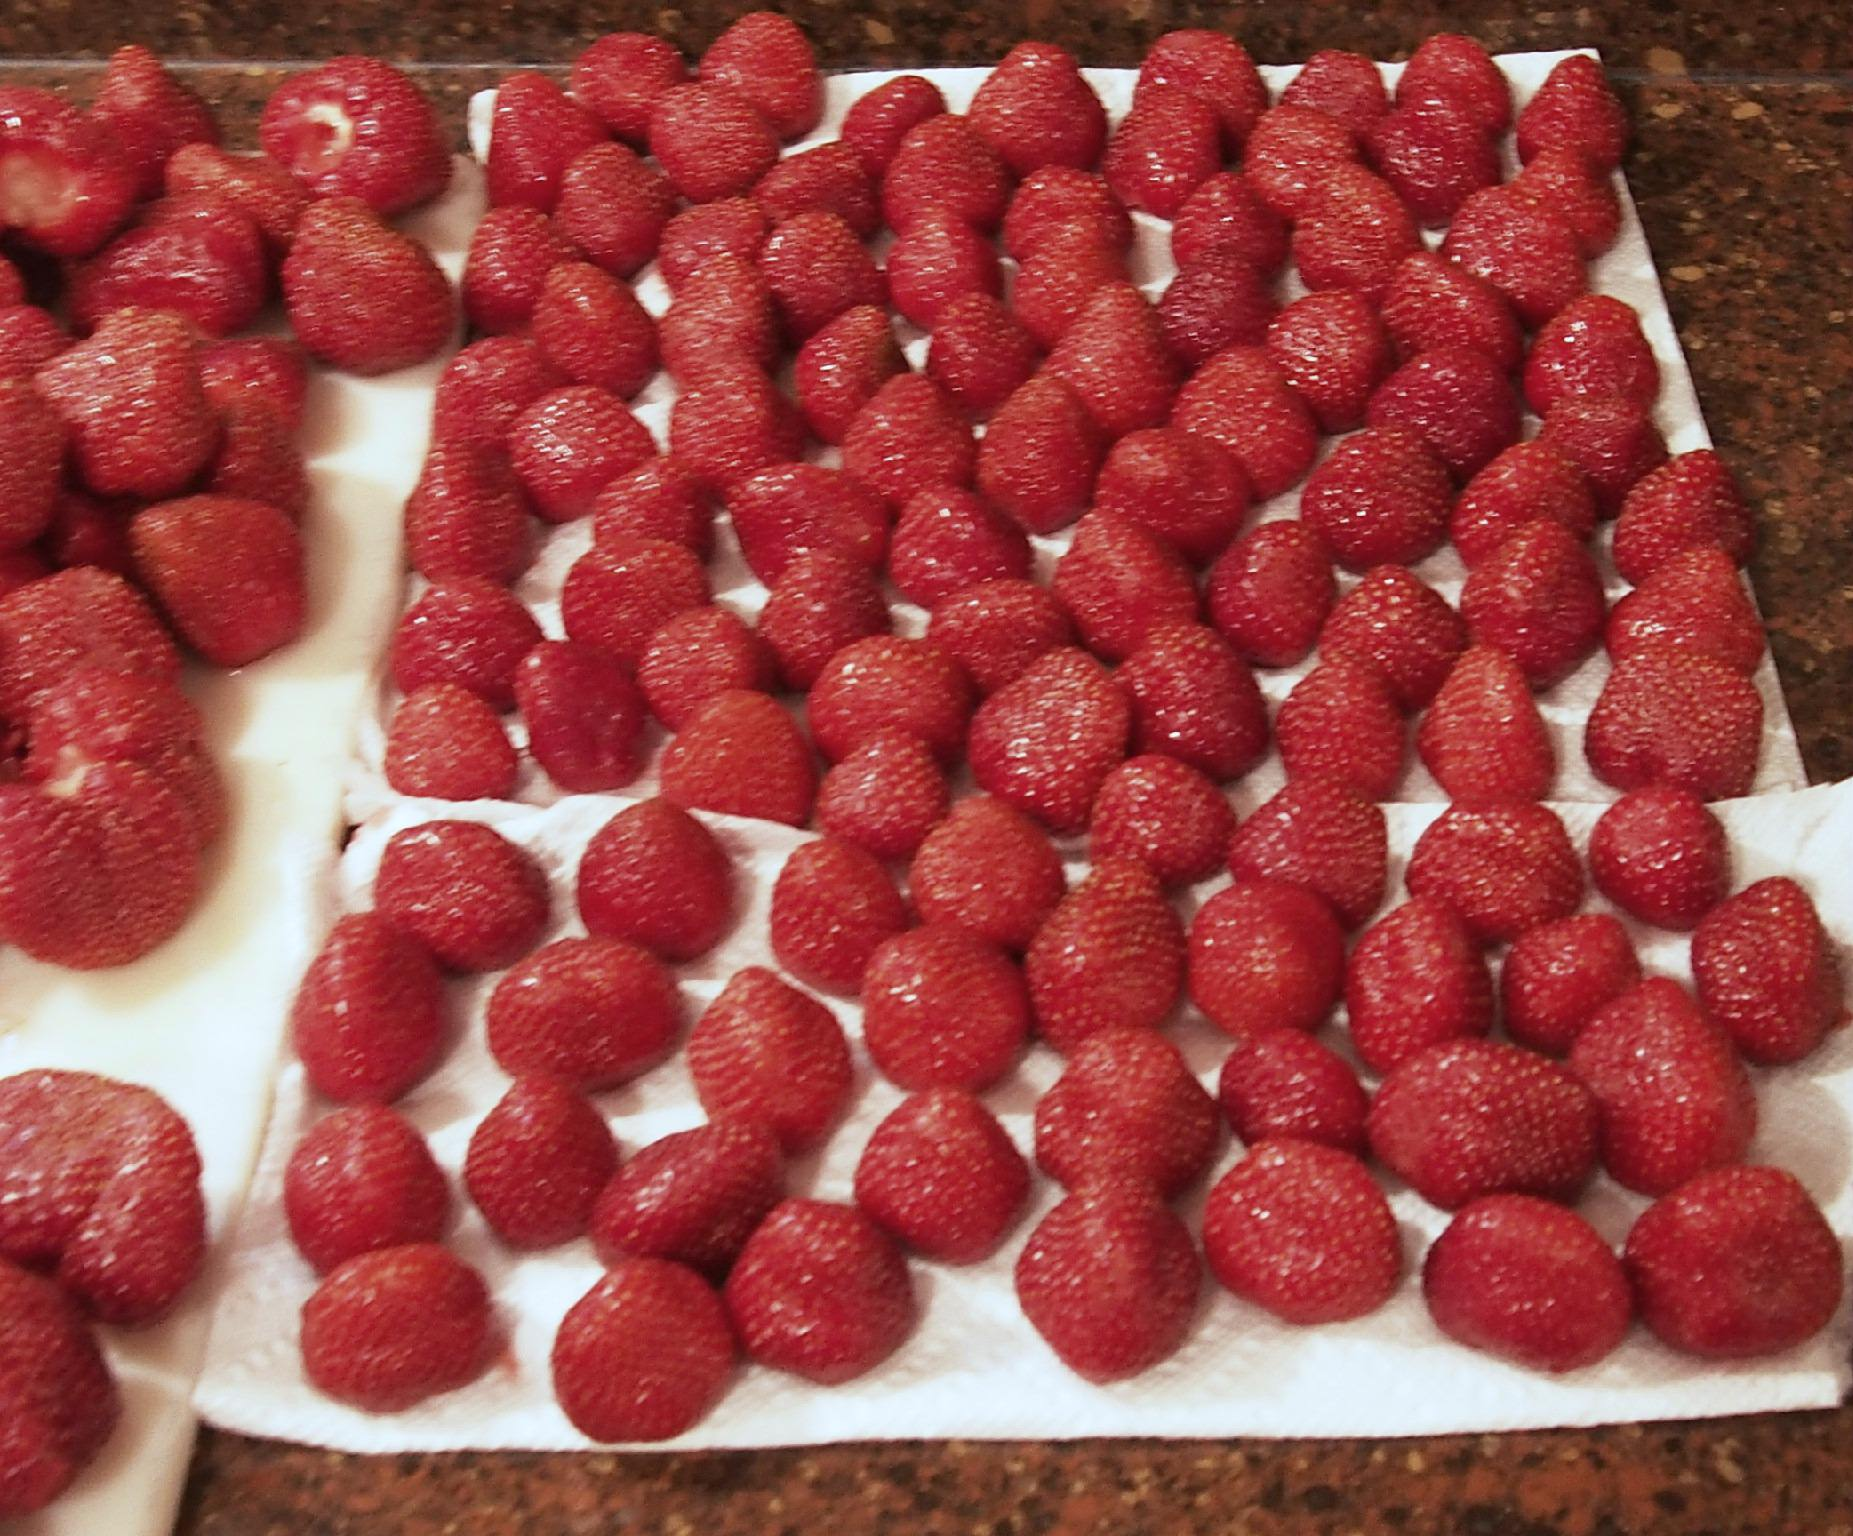 drying-strawberries-for-pie